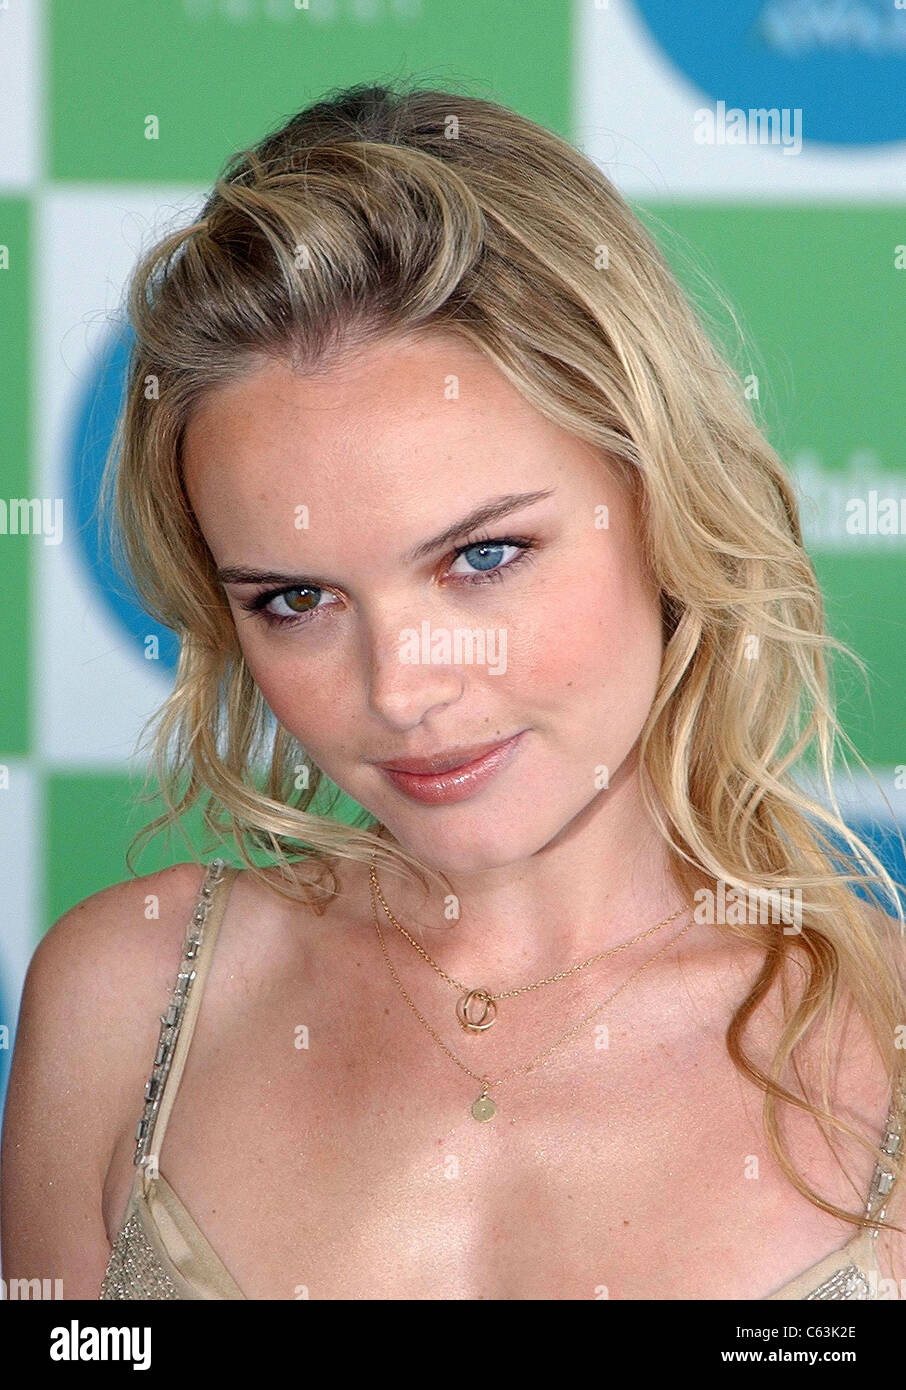 Kate Bosworth at arrivals for 20th IFP Independent Spirit Awards, Los Angeles, CA, Saturday, February 26, 2005. - Stock Image